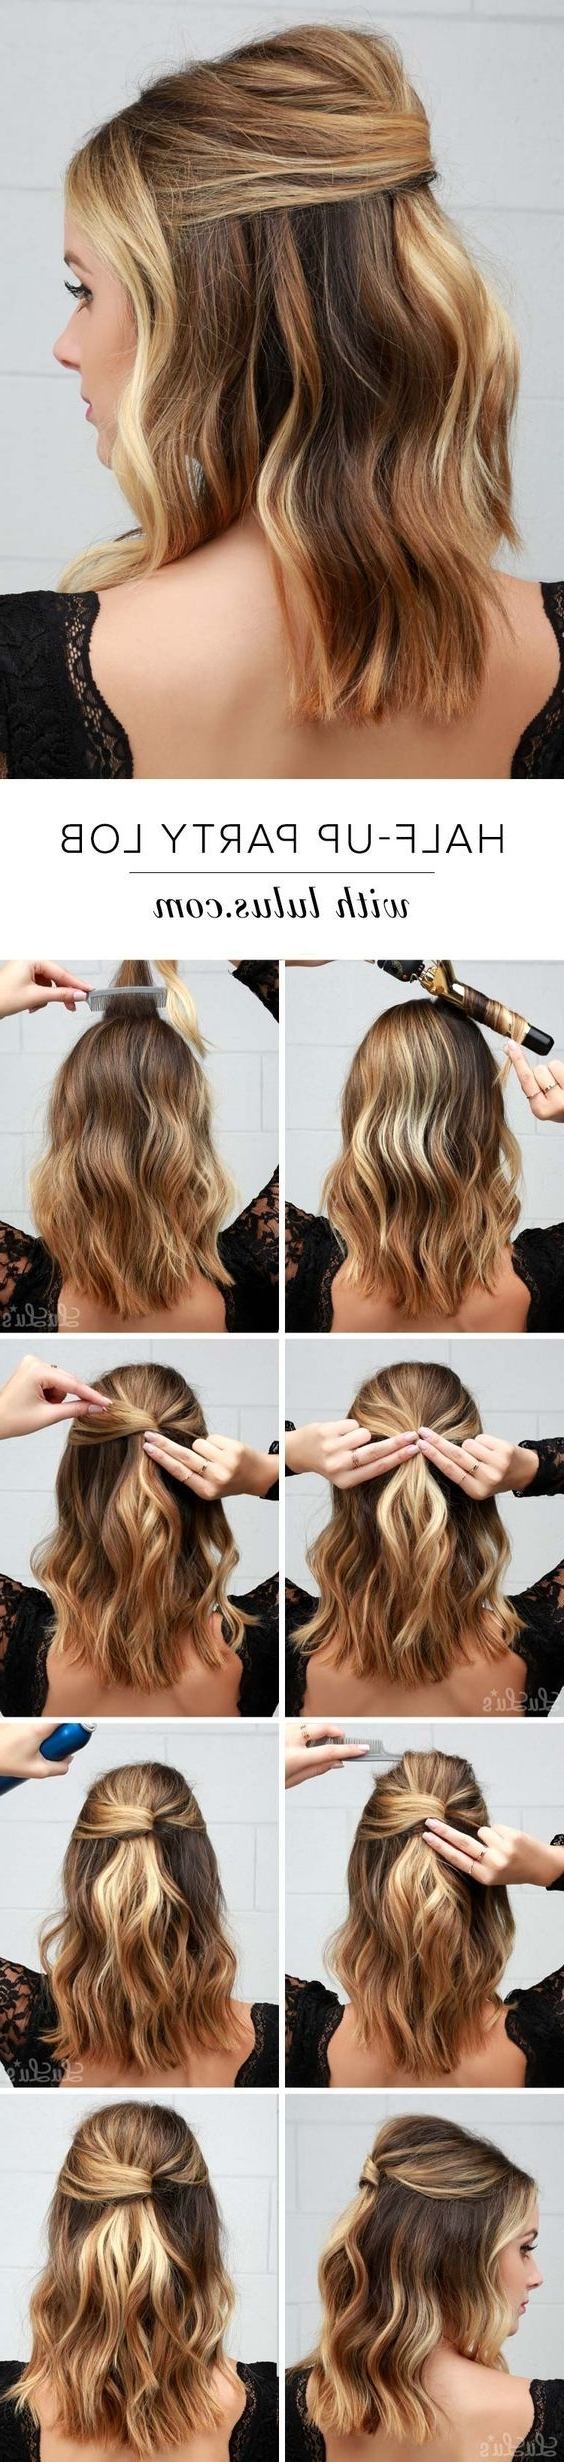 15 Ways To Style Your Lobs (Long Bob Hairstyle Ideas) – Pretty Designs With Regard To Current Braided Lob Hairstyles (View 12 of 15)